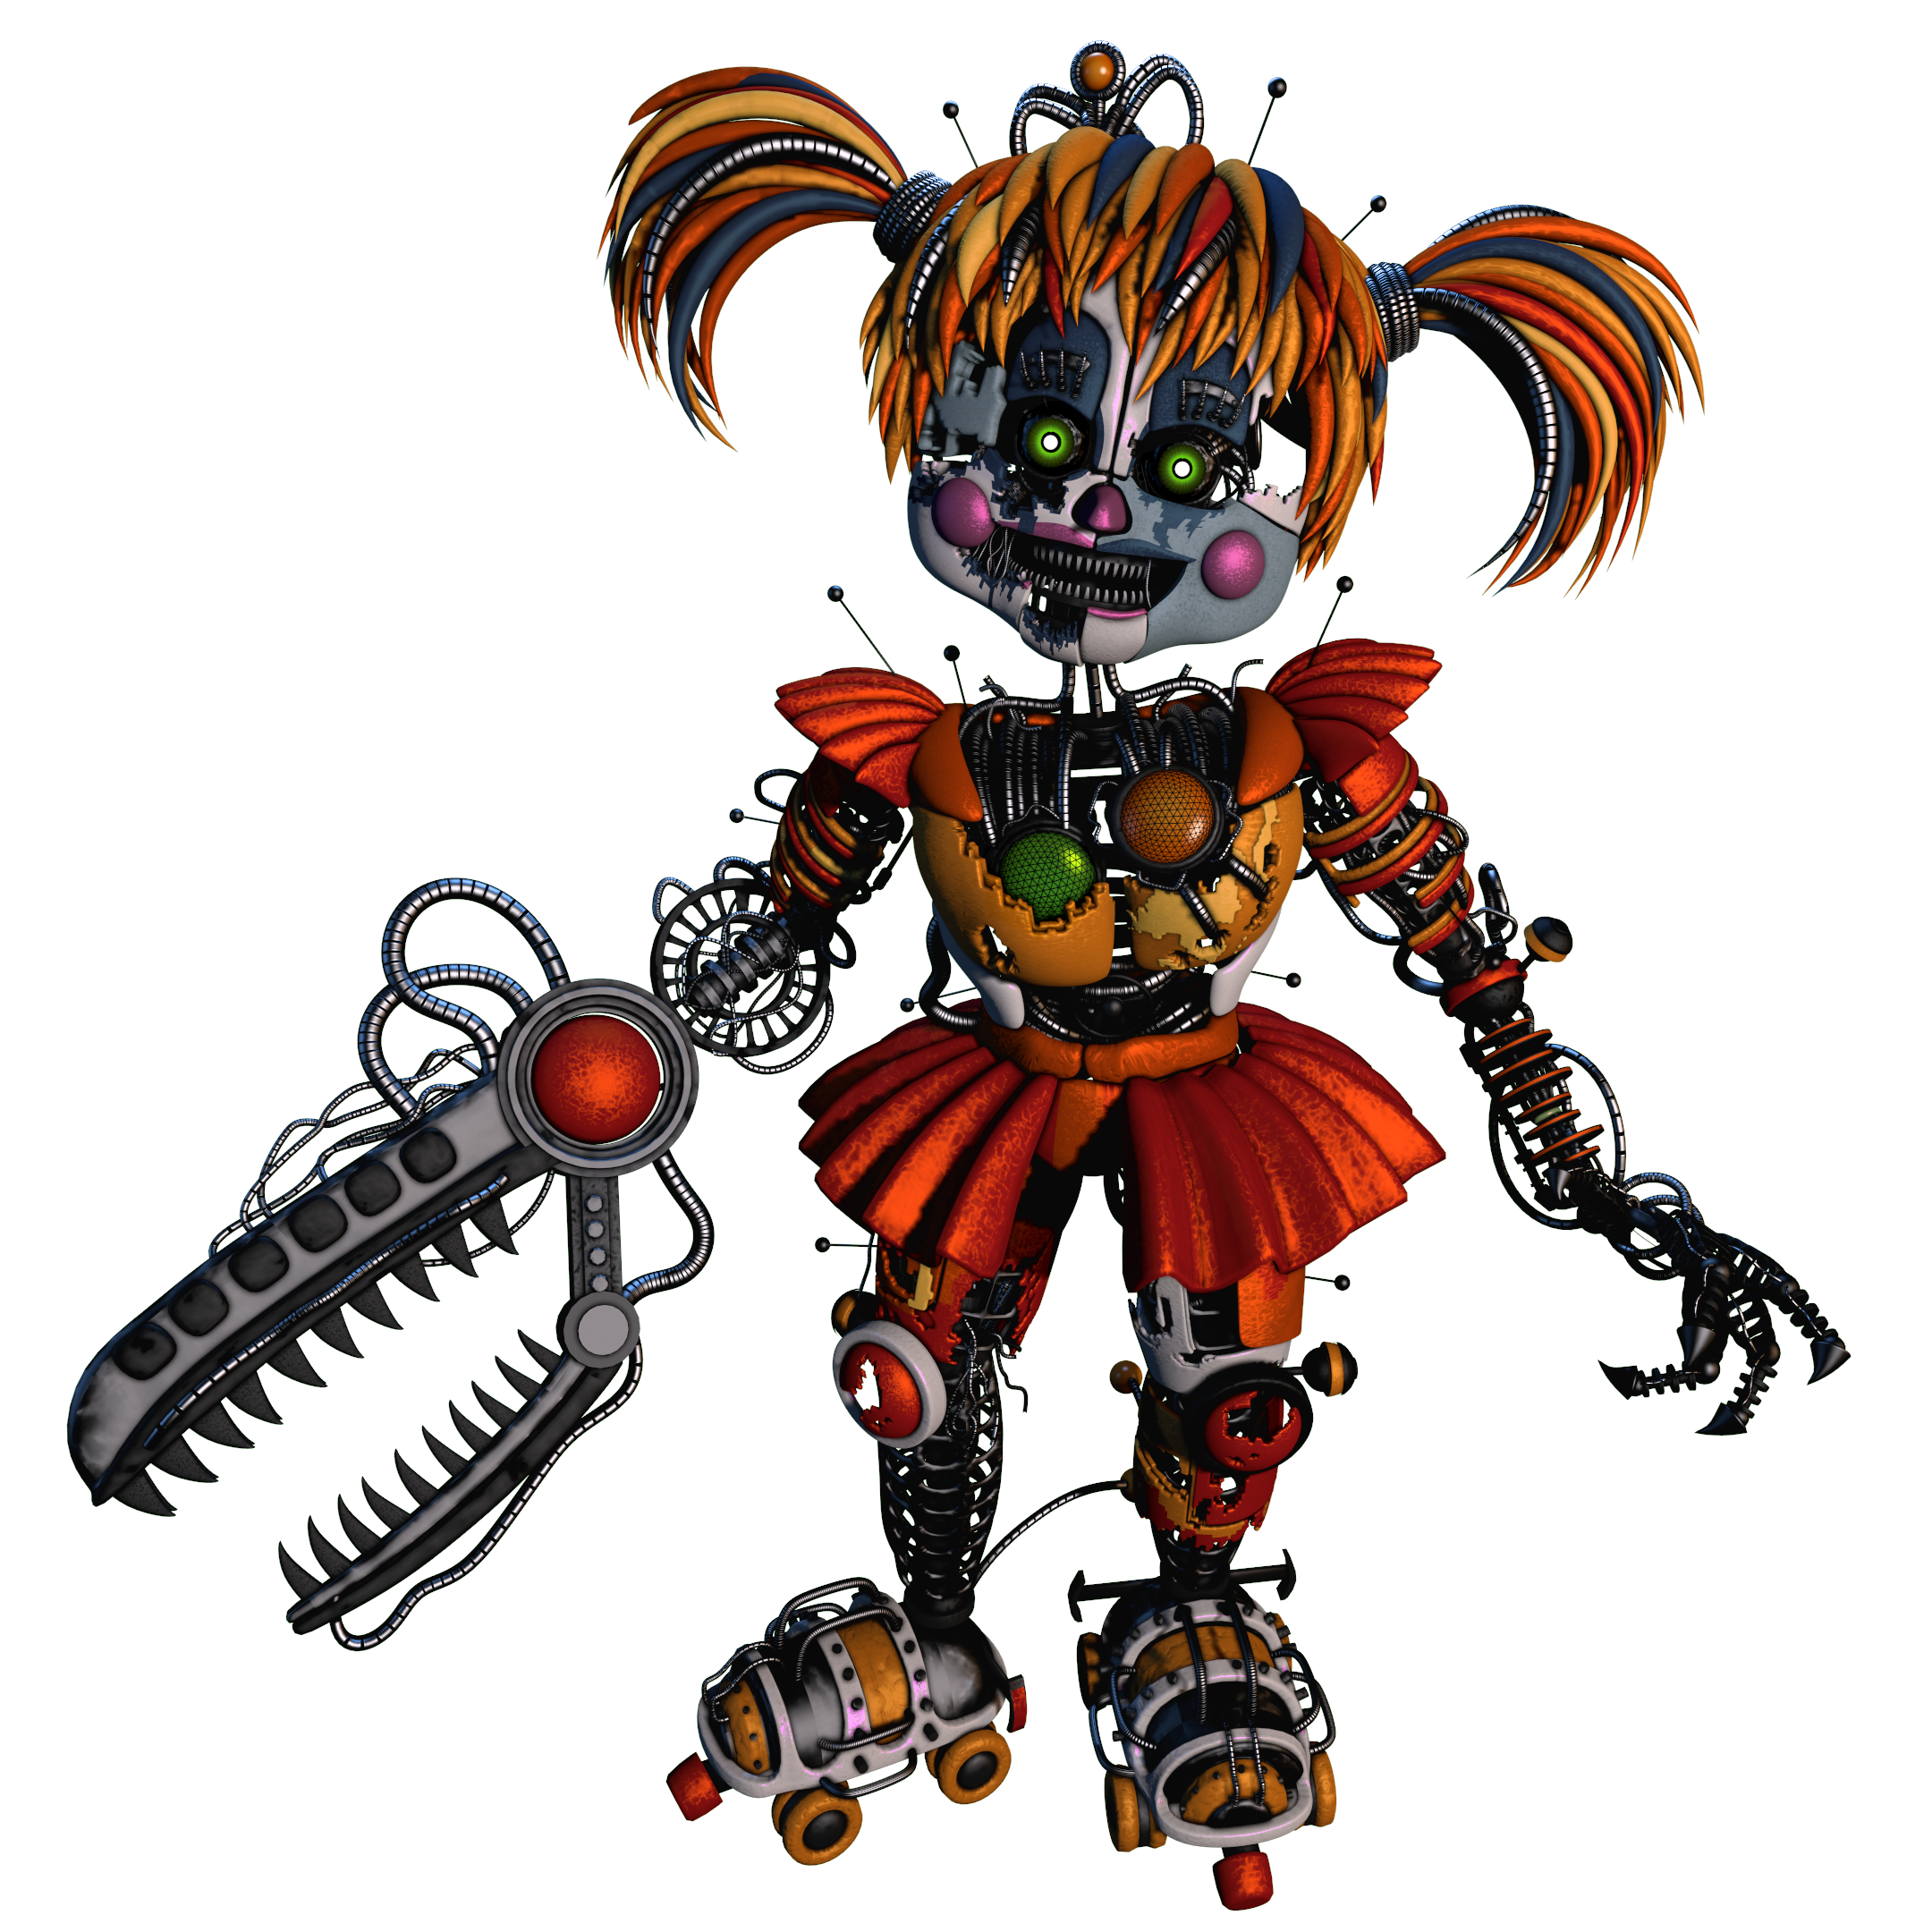 [FNaF 6 FFPS] By FriskYT On